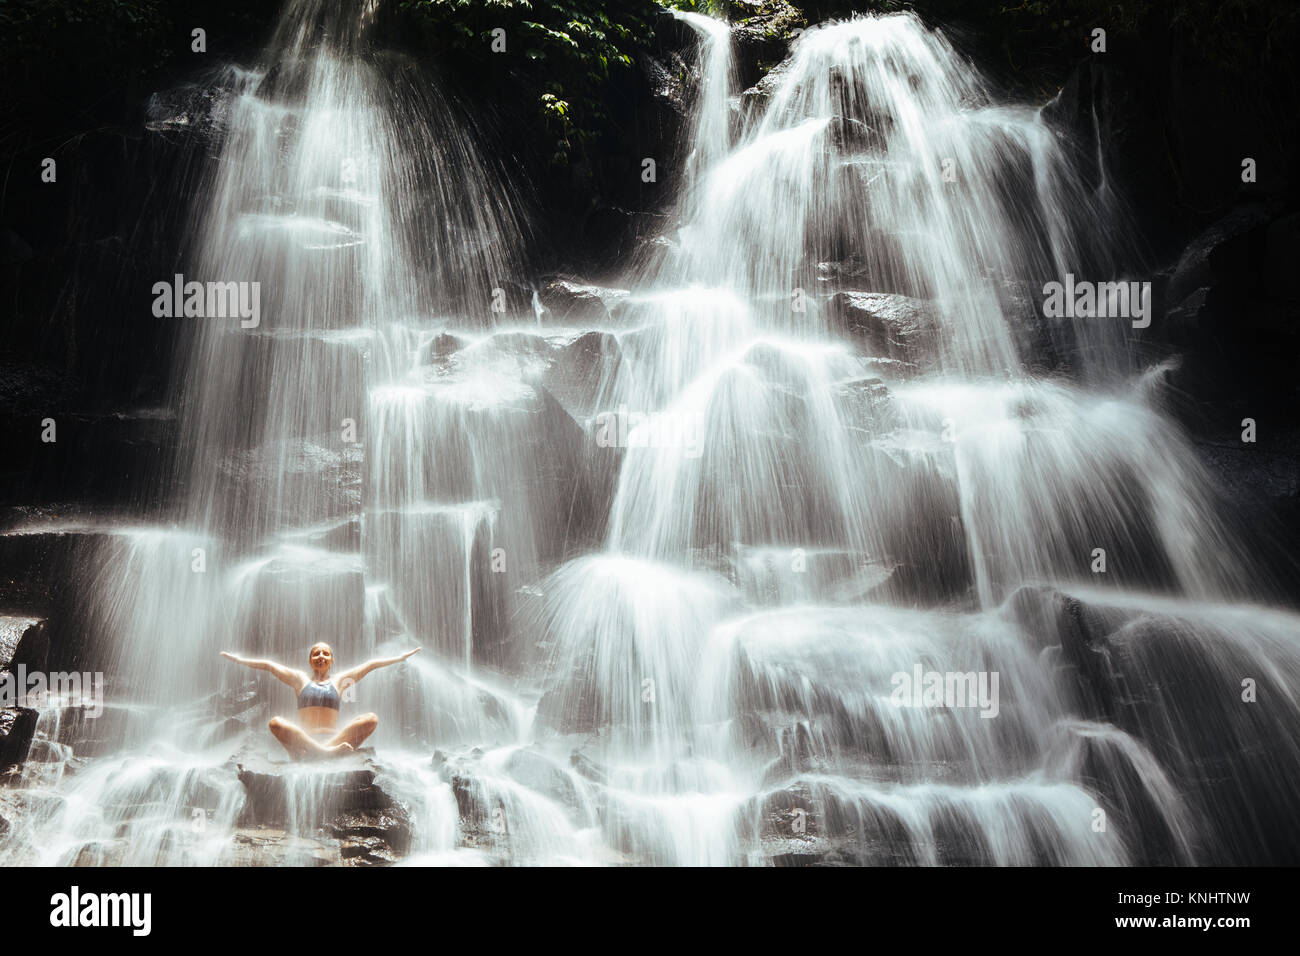 Travel in Bali jungle. Beautiful young woman sitting in yoga pose on rock under falling spring water, enjoy tropic - Stock Image